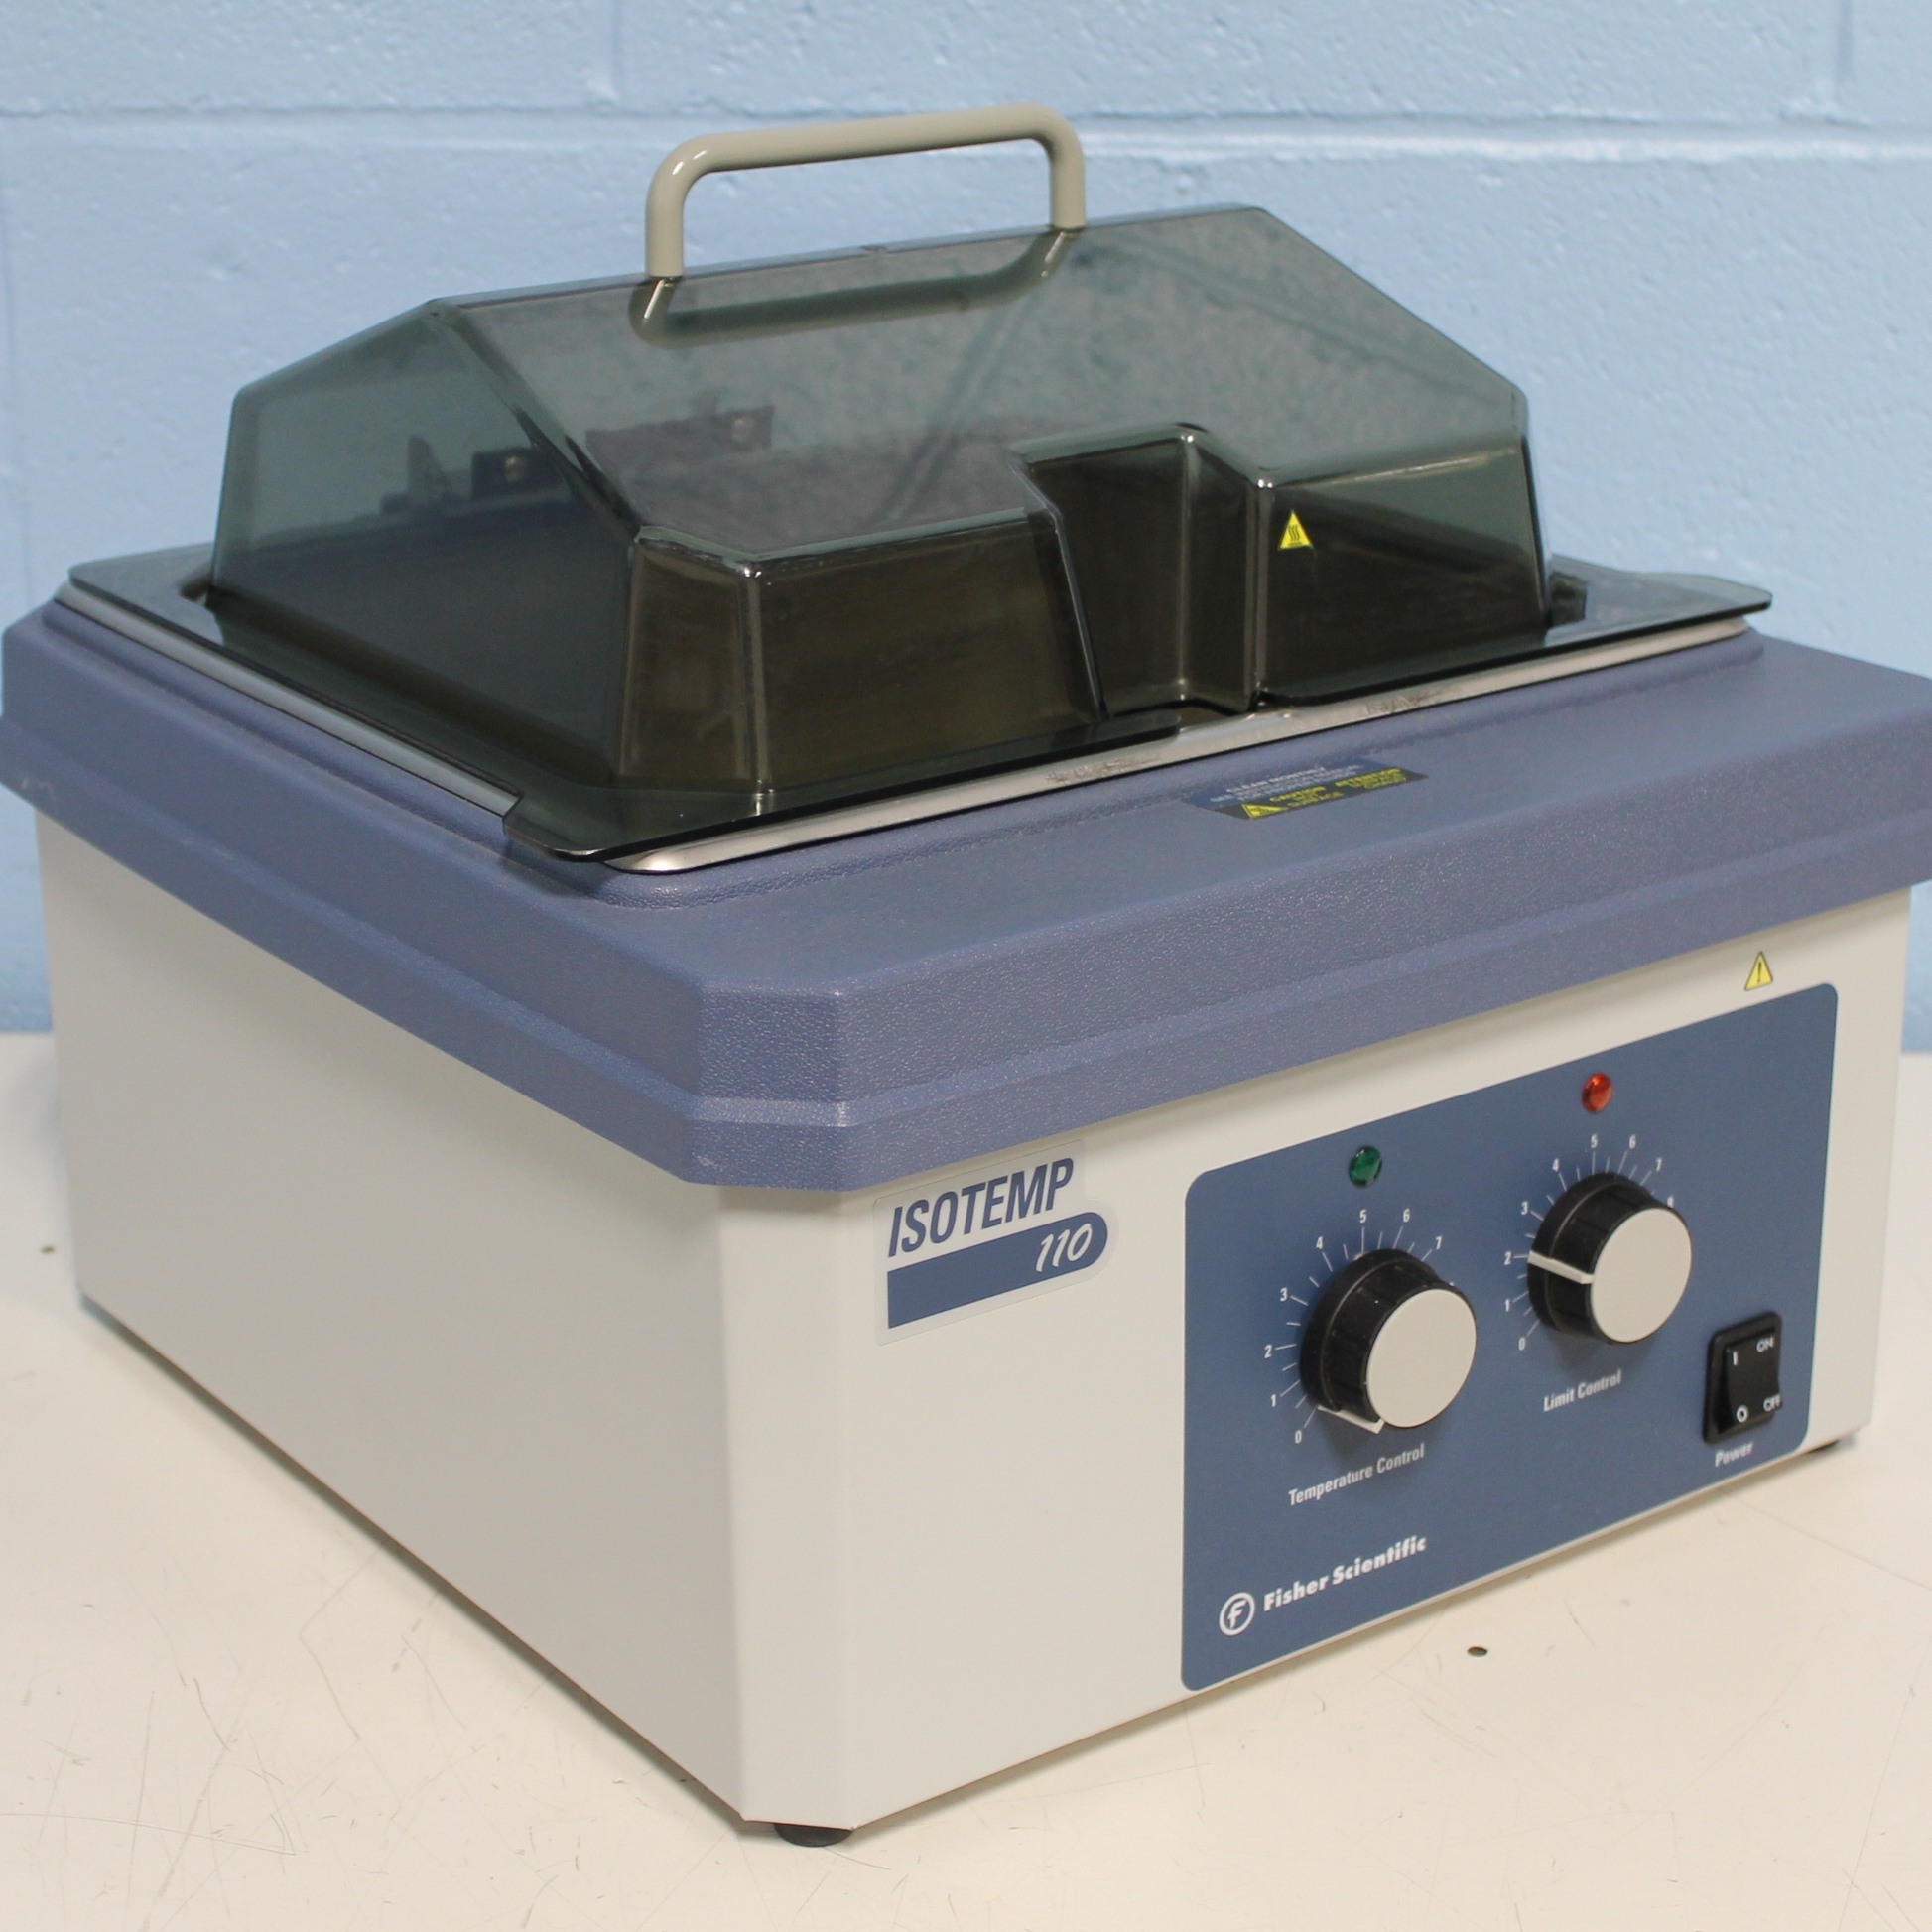 Refurbished Fisher Scientific Isotemp 110 Water Bath